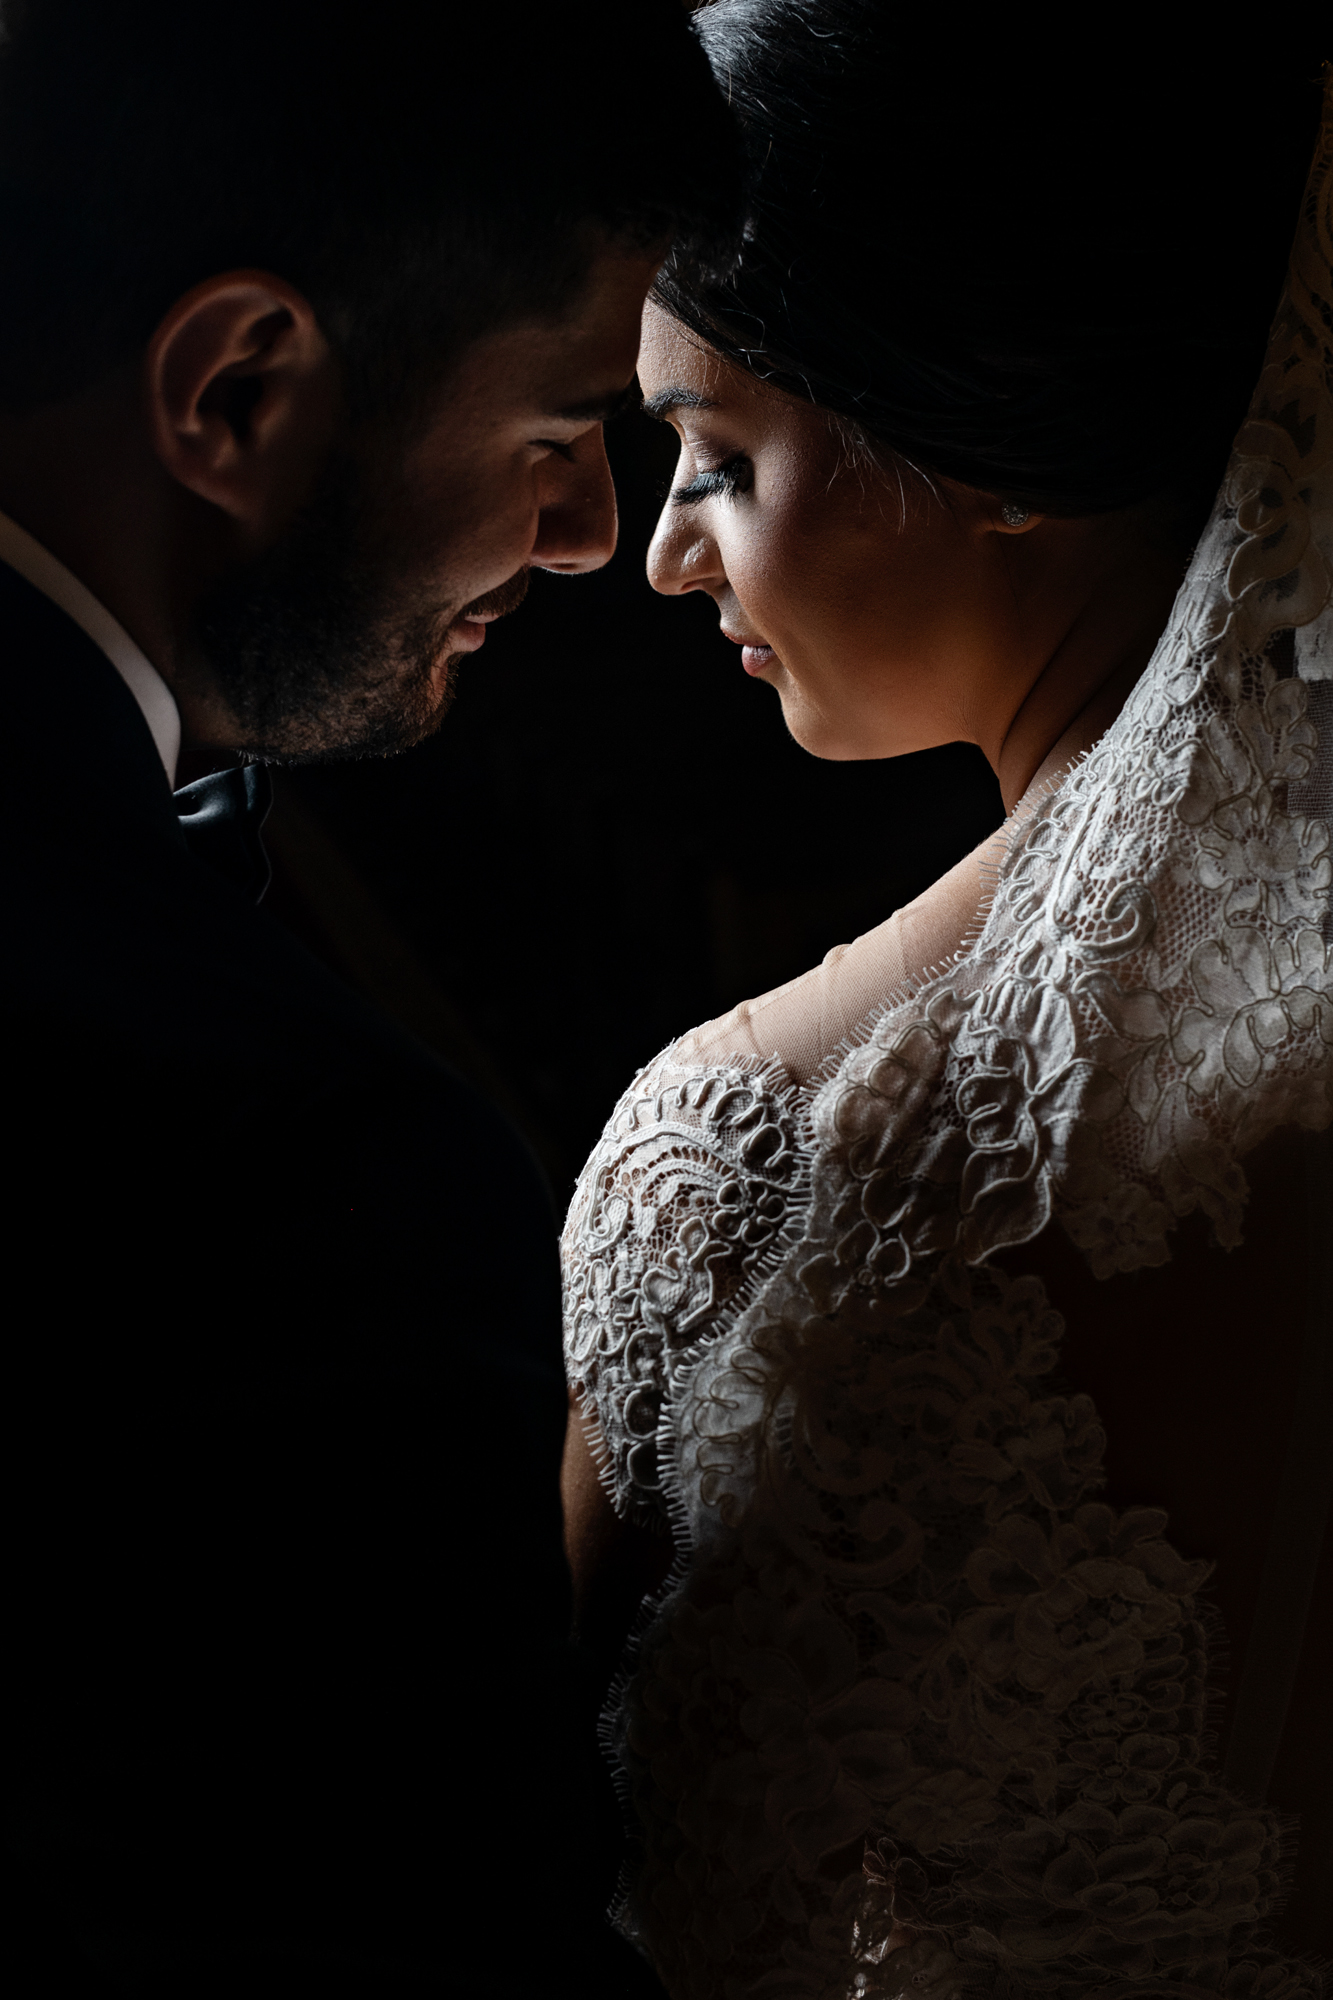 Face to face couple portrait - photo by Cooked Photography